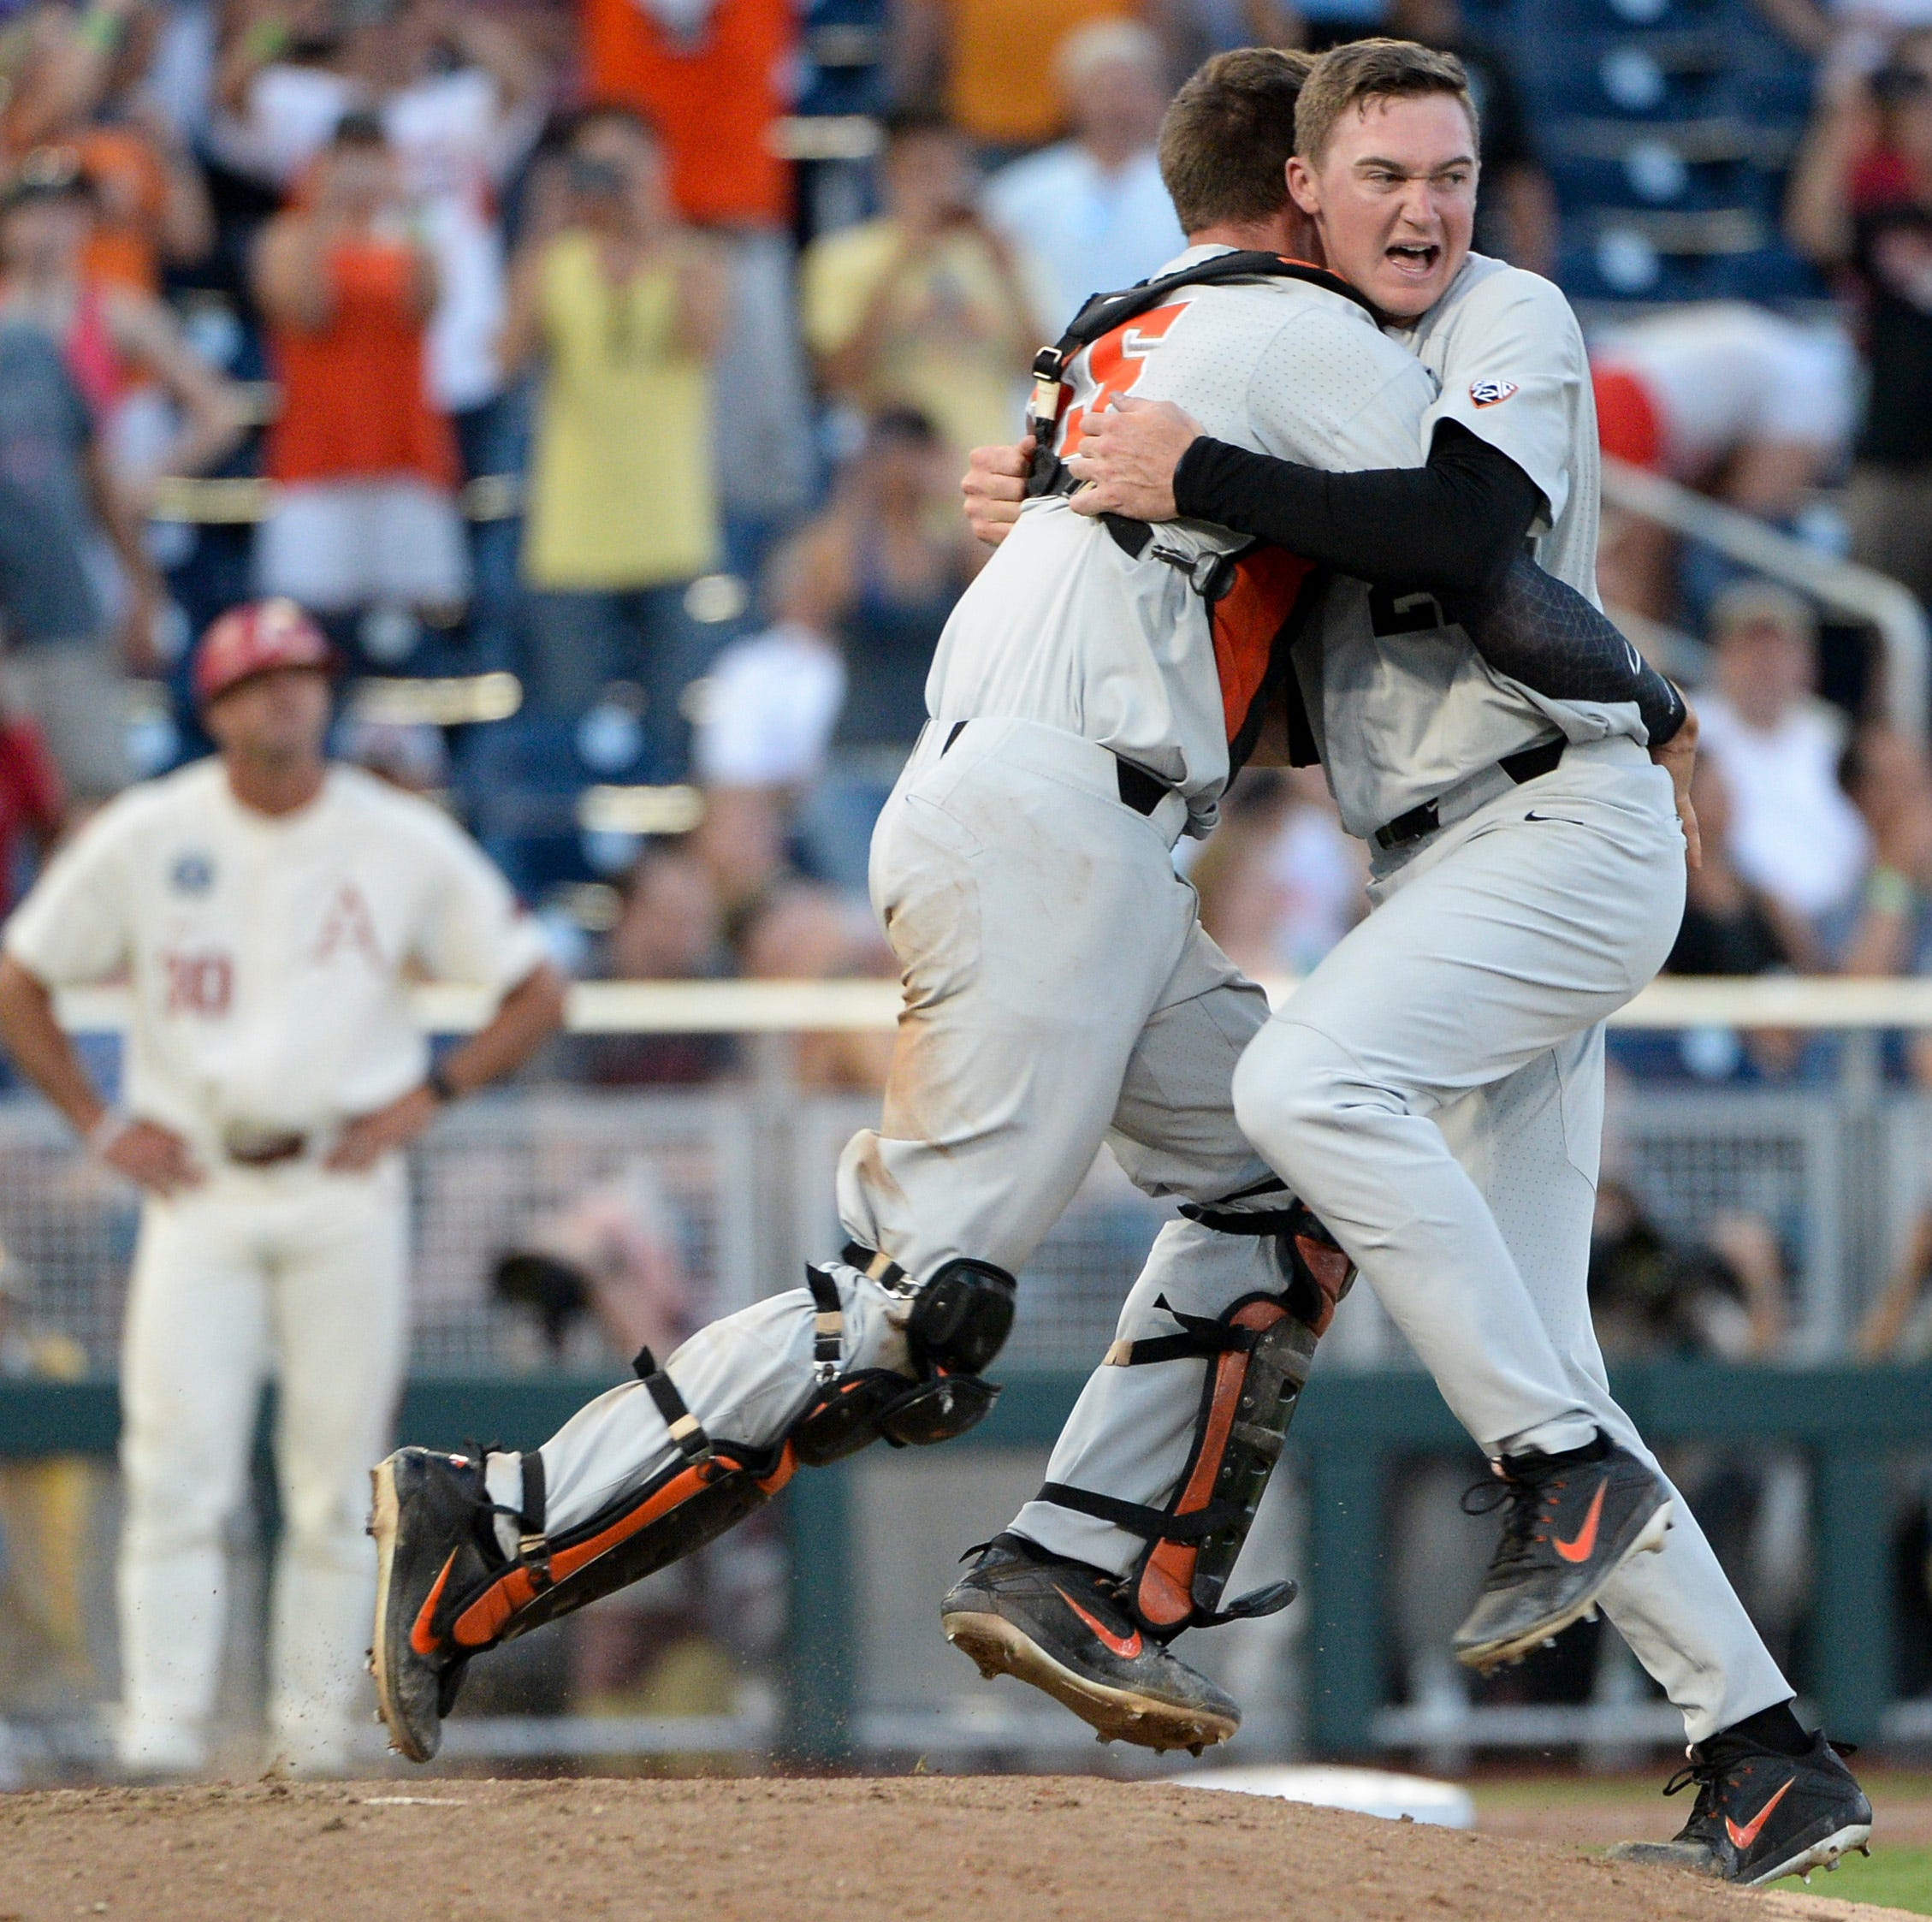 Oregon State baseball: Defending national champion Beavers to host NCAA regional